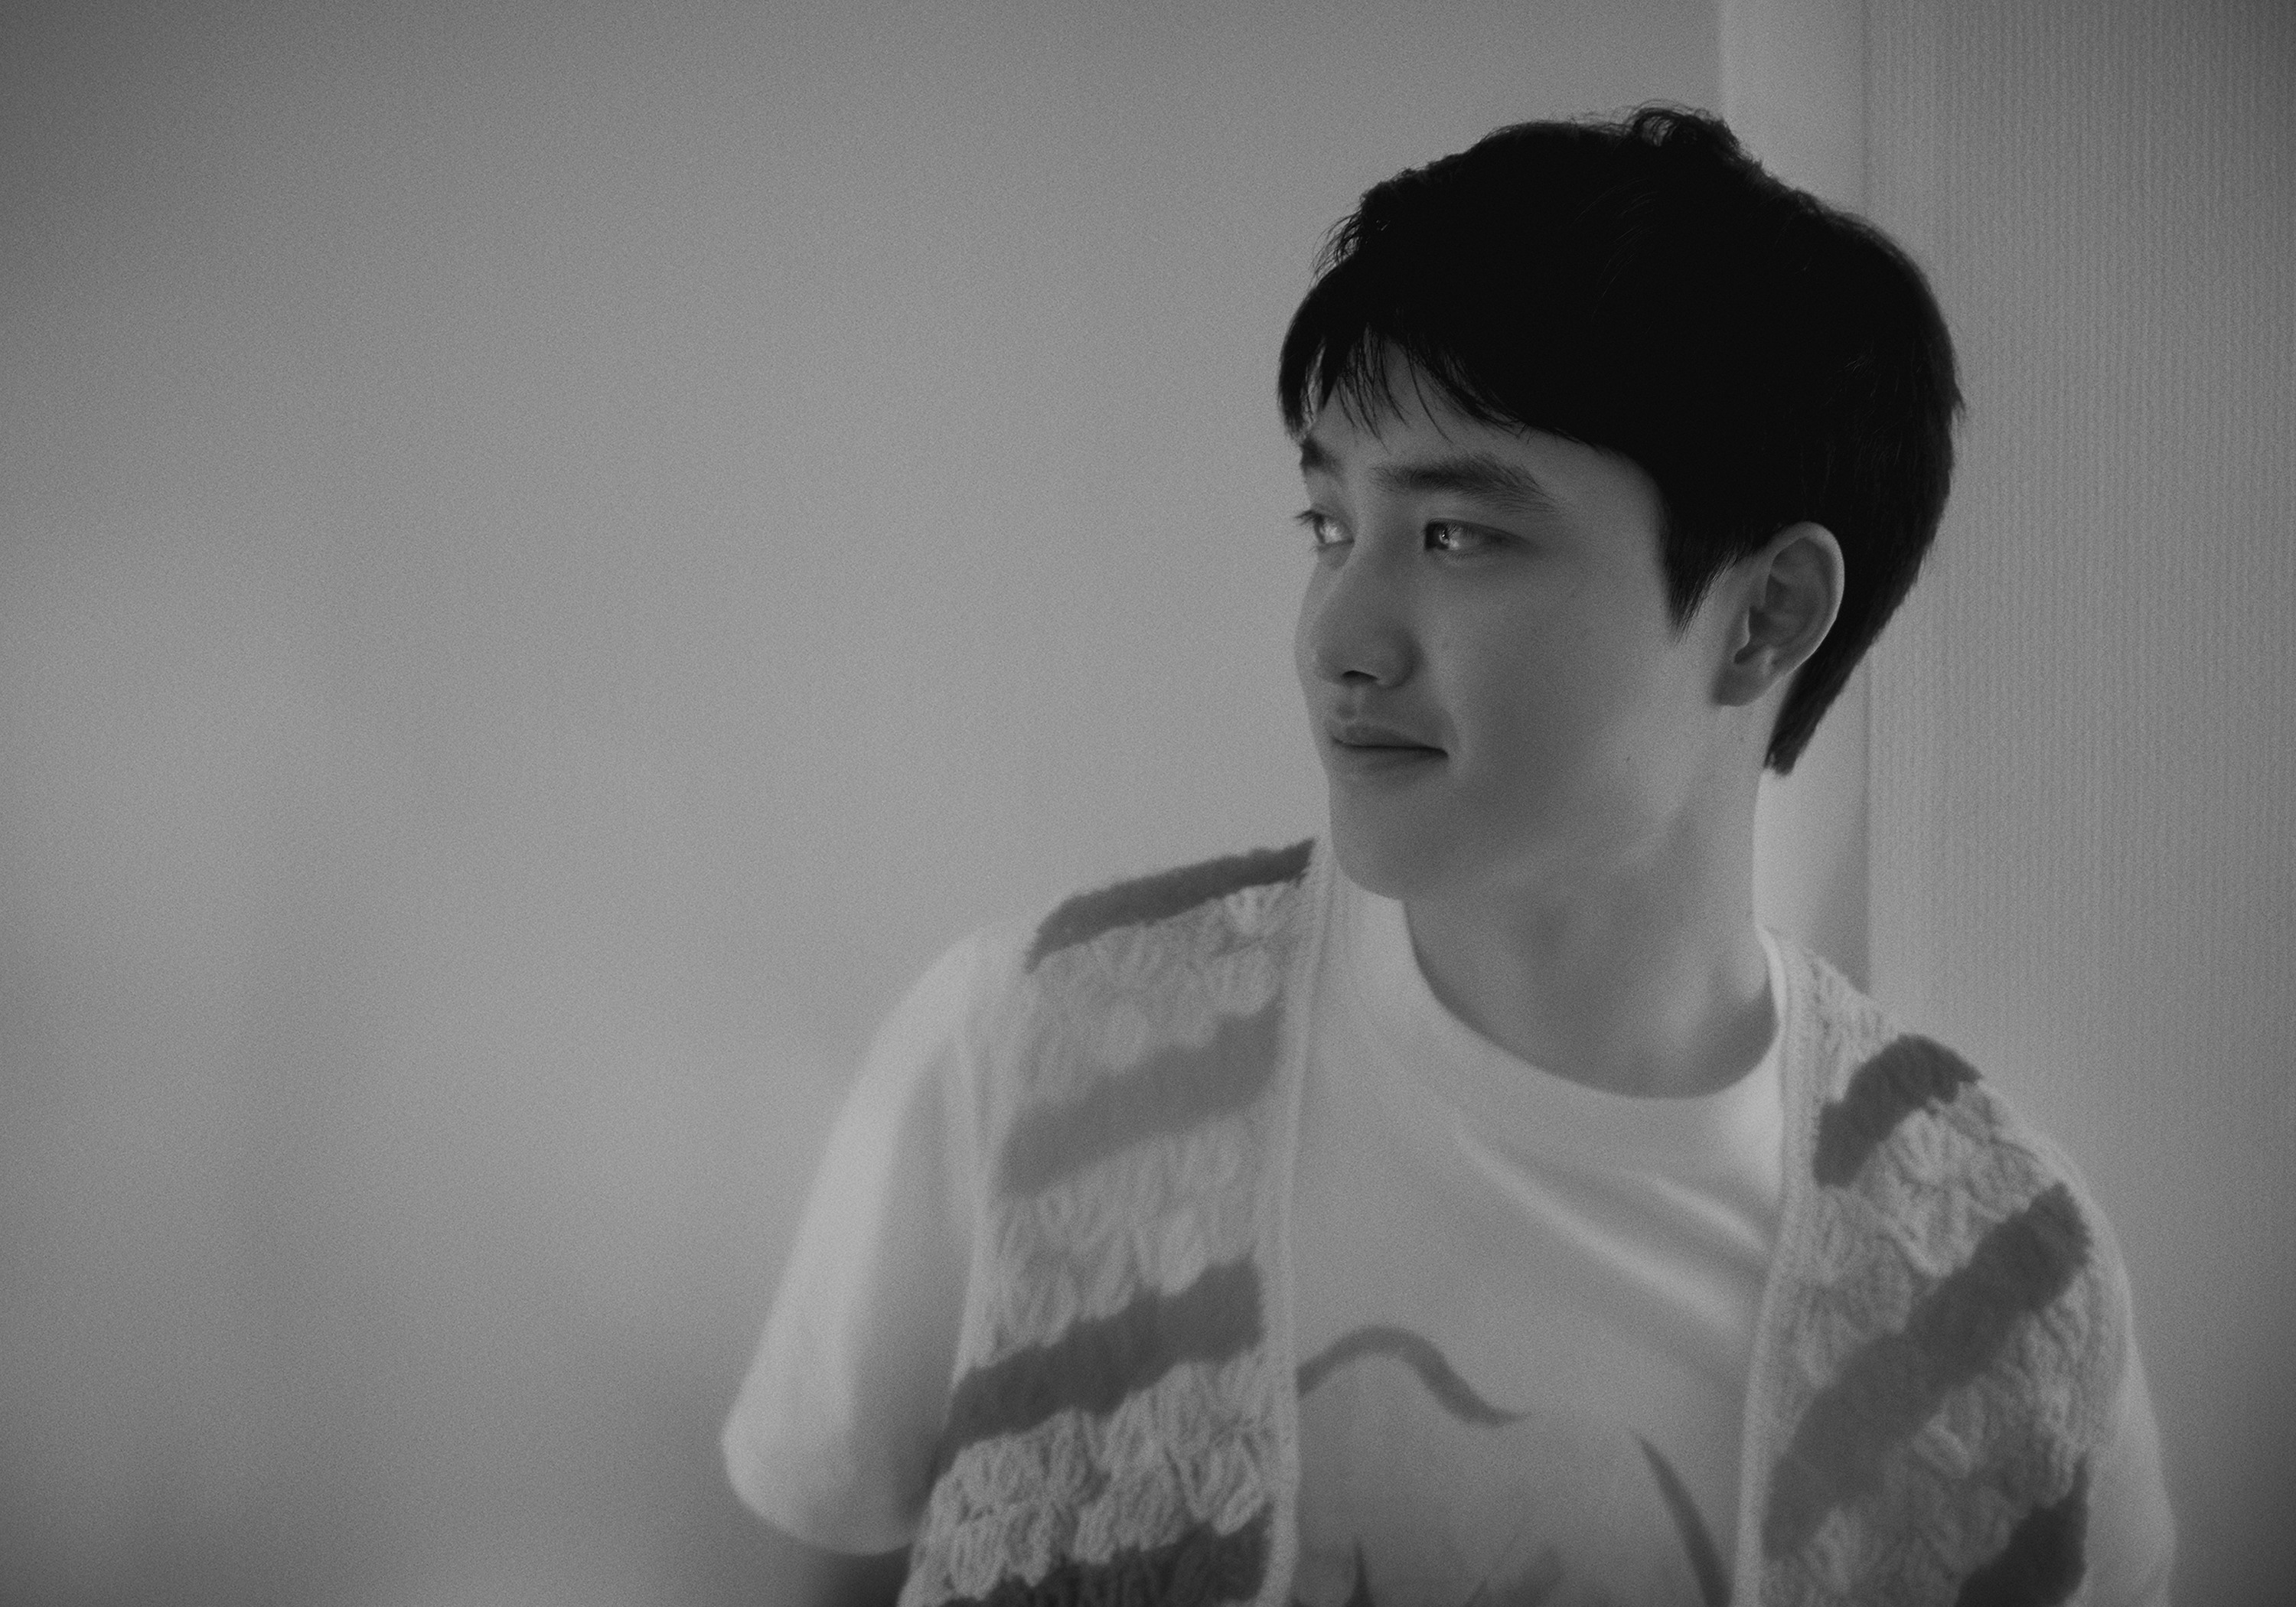 """EXO'S D.O. Dominates Global Charts With His Solo Album """"Empathy"""""""